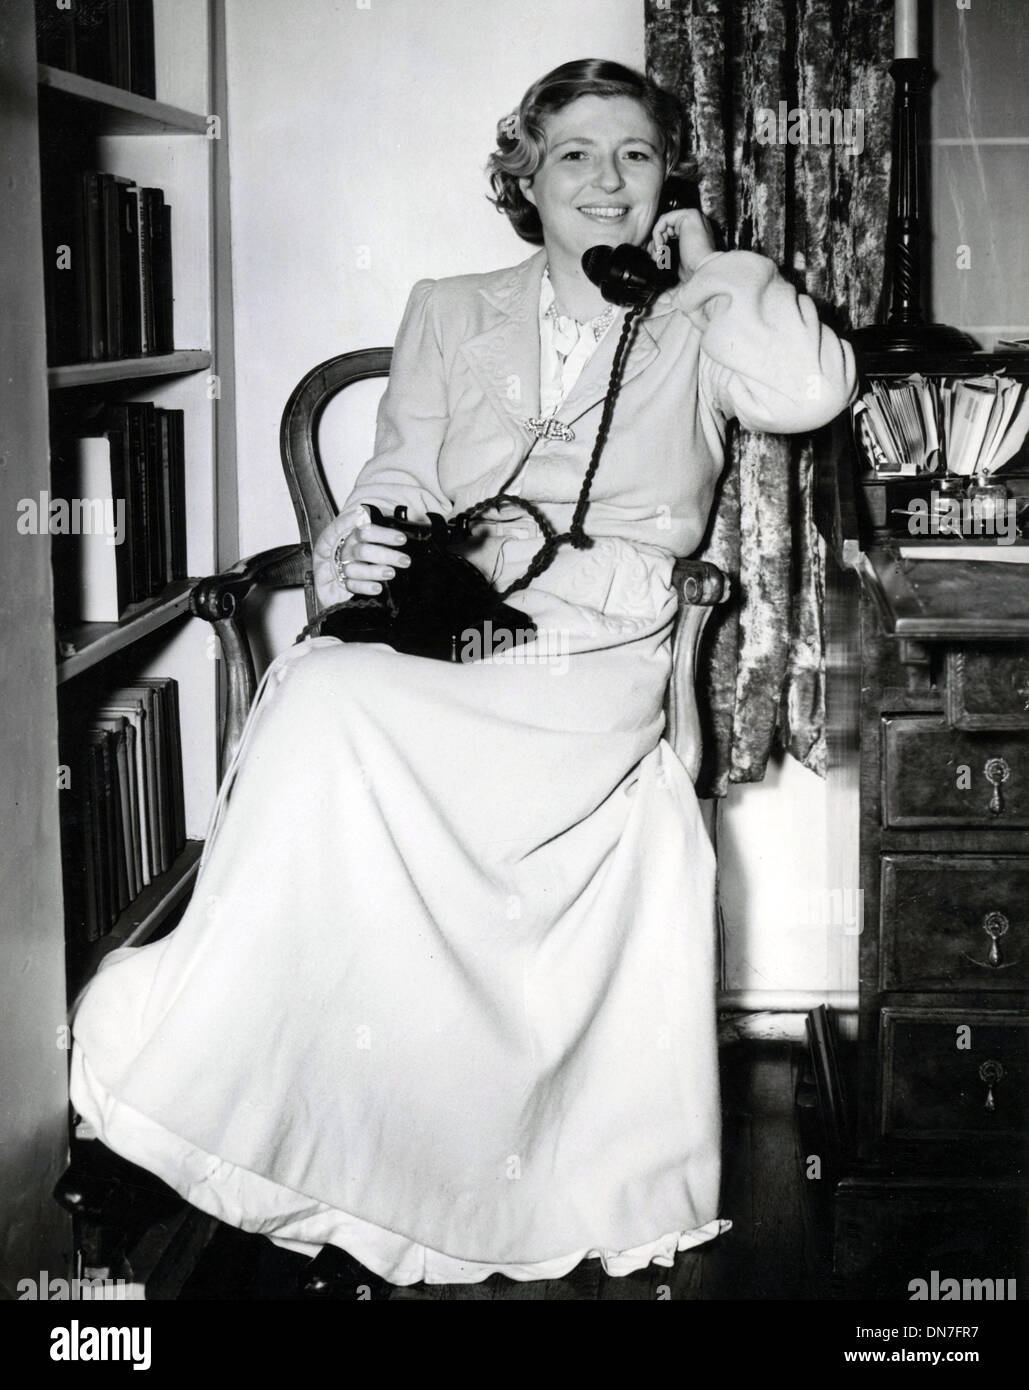 Nov. 24, 1953 - London, England, U.K. - Wife of Captain A.C. Loraine, MARY LORAINE still wearing her nightgown and housecoat uses the telephone to tell a friend the police have sealed her bedroom to search for clues after a large robbery. - Stock Image